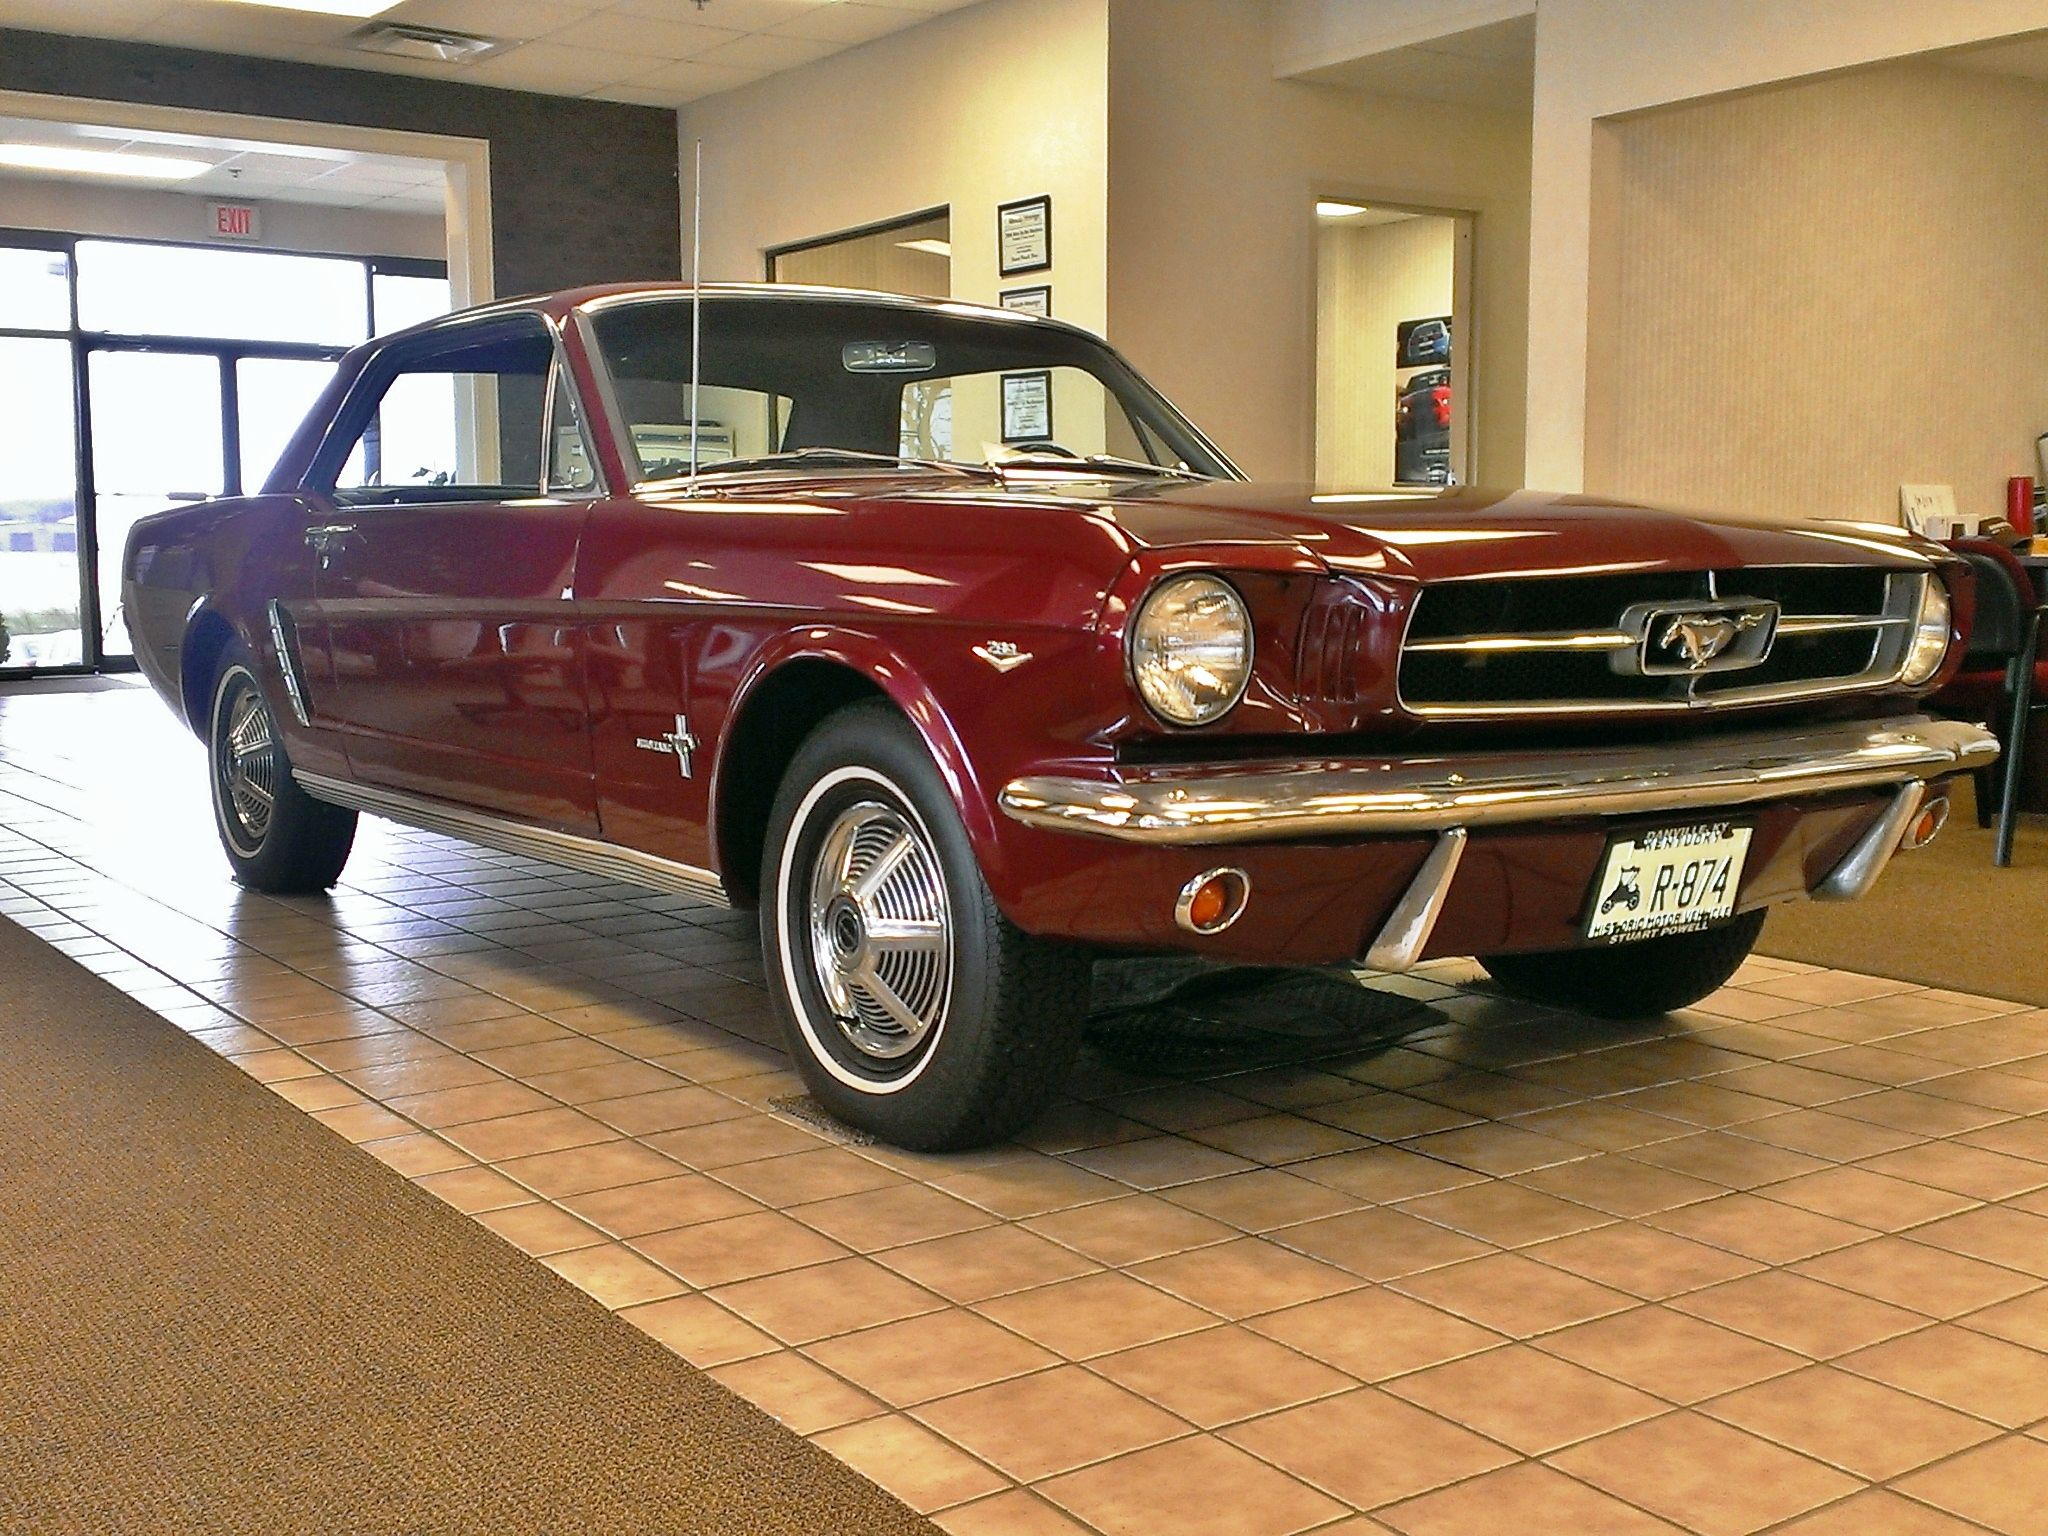 Pin By Michael Luzzi On Ford Mustangs Red Mustang Ford Mustang Mustang Fastback